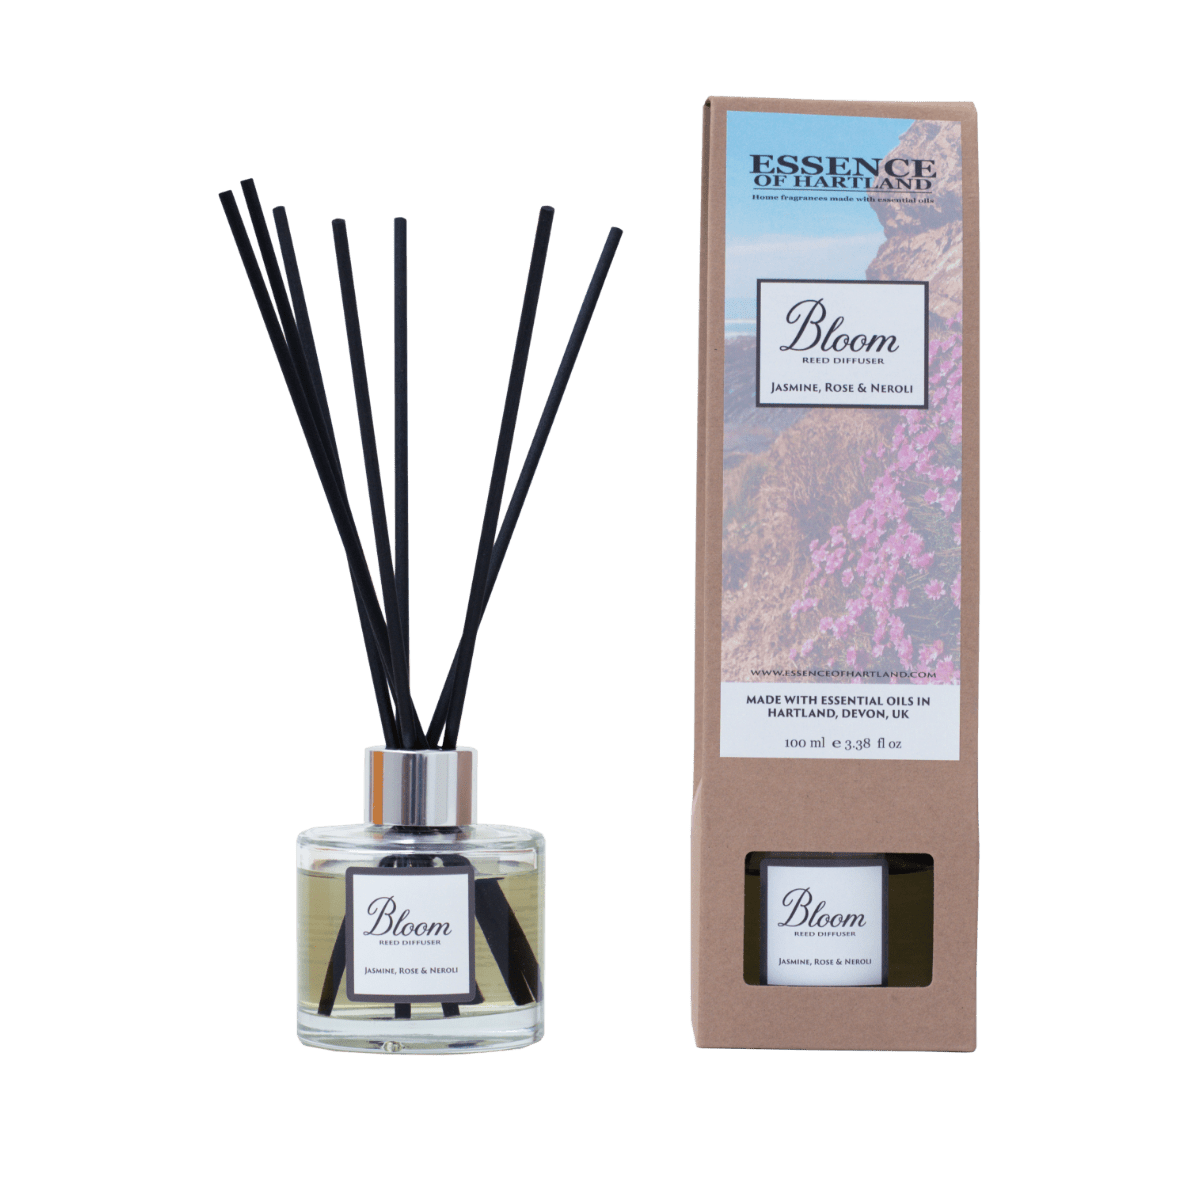 Glass diffuser bottle of Bloom with black fibre reeds, in the middle the diffuser box packaging detailing the name of the product and image of flowers on cliffs looking down to Welcombe Beach.